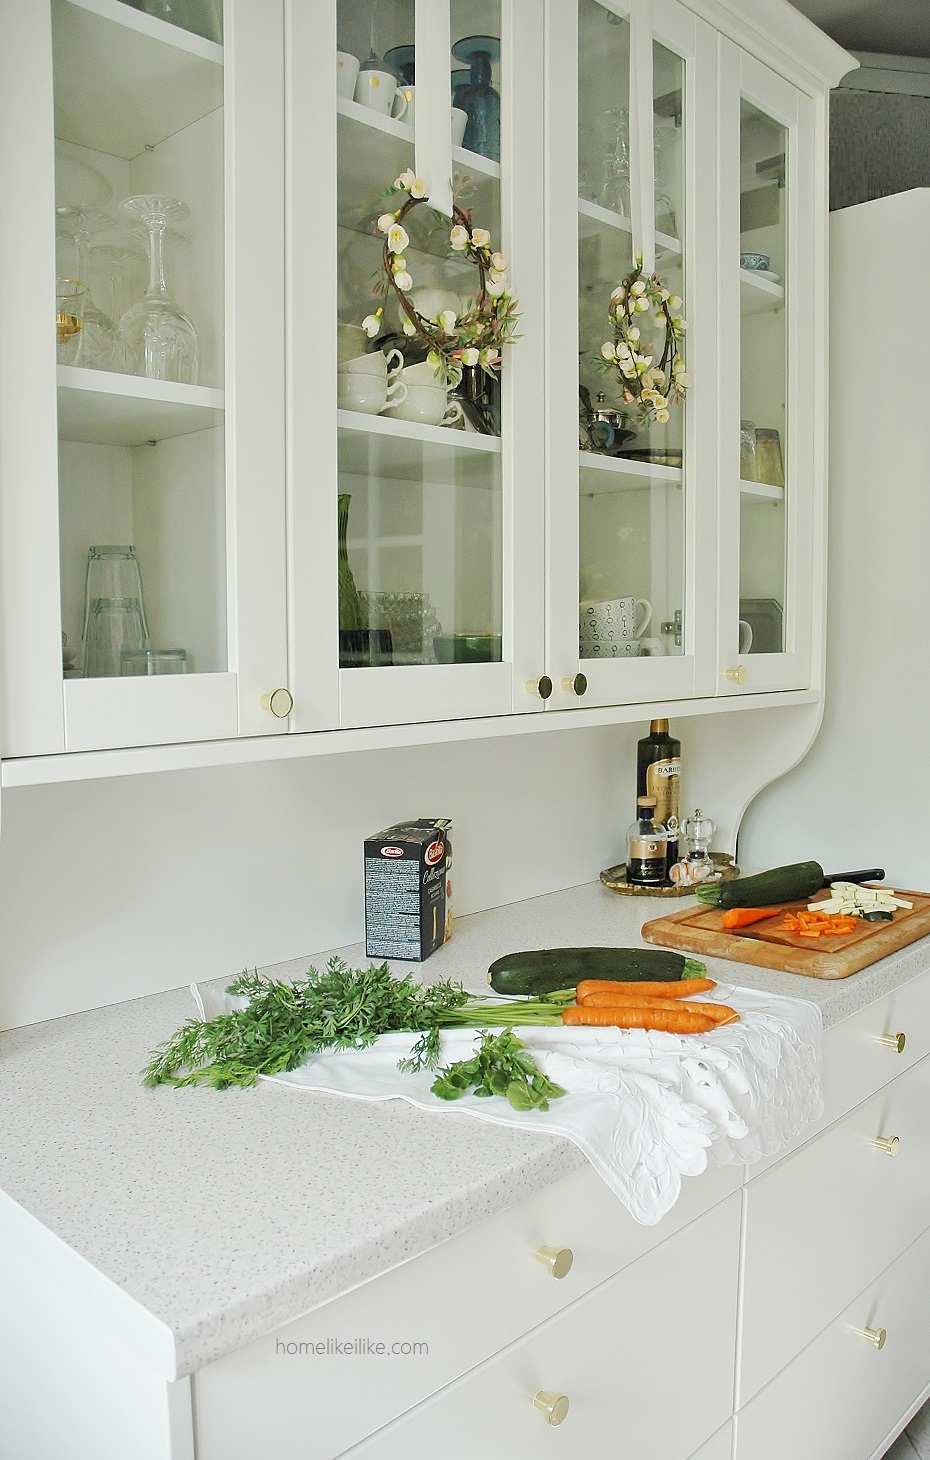 white kitchen with gold knobs - homelikeilike.com